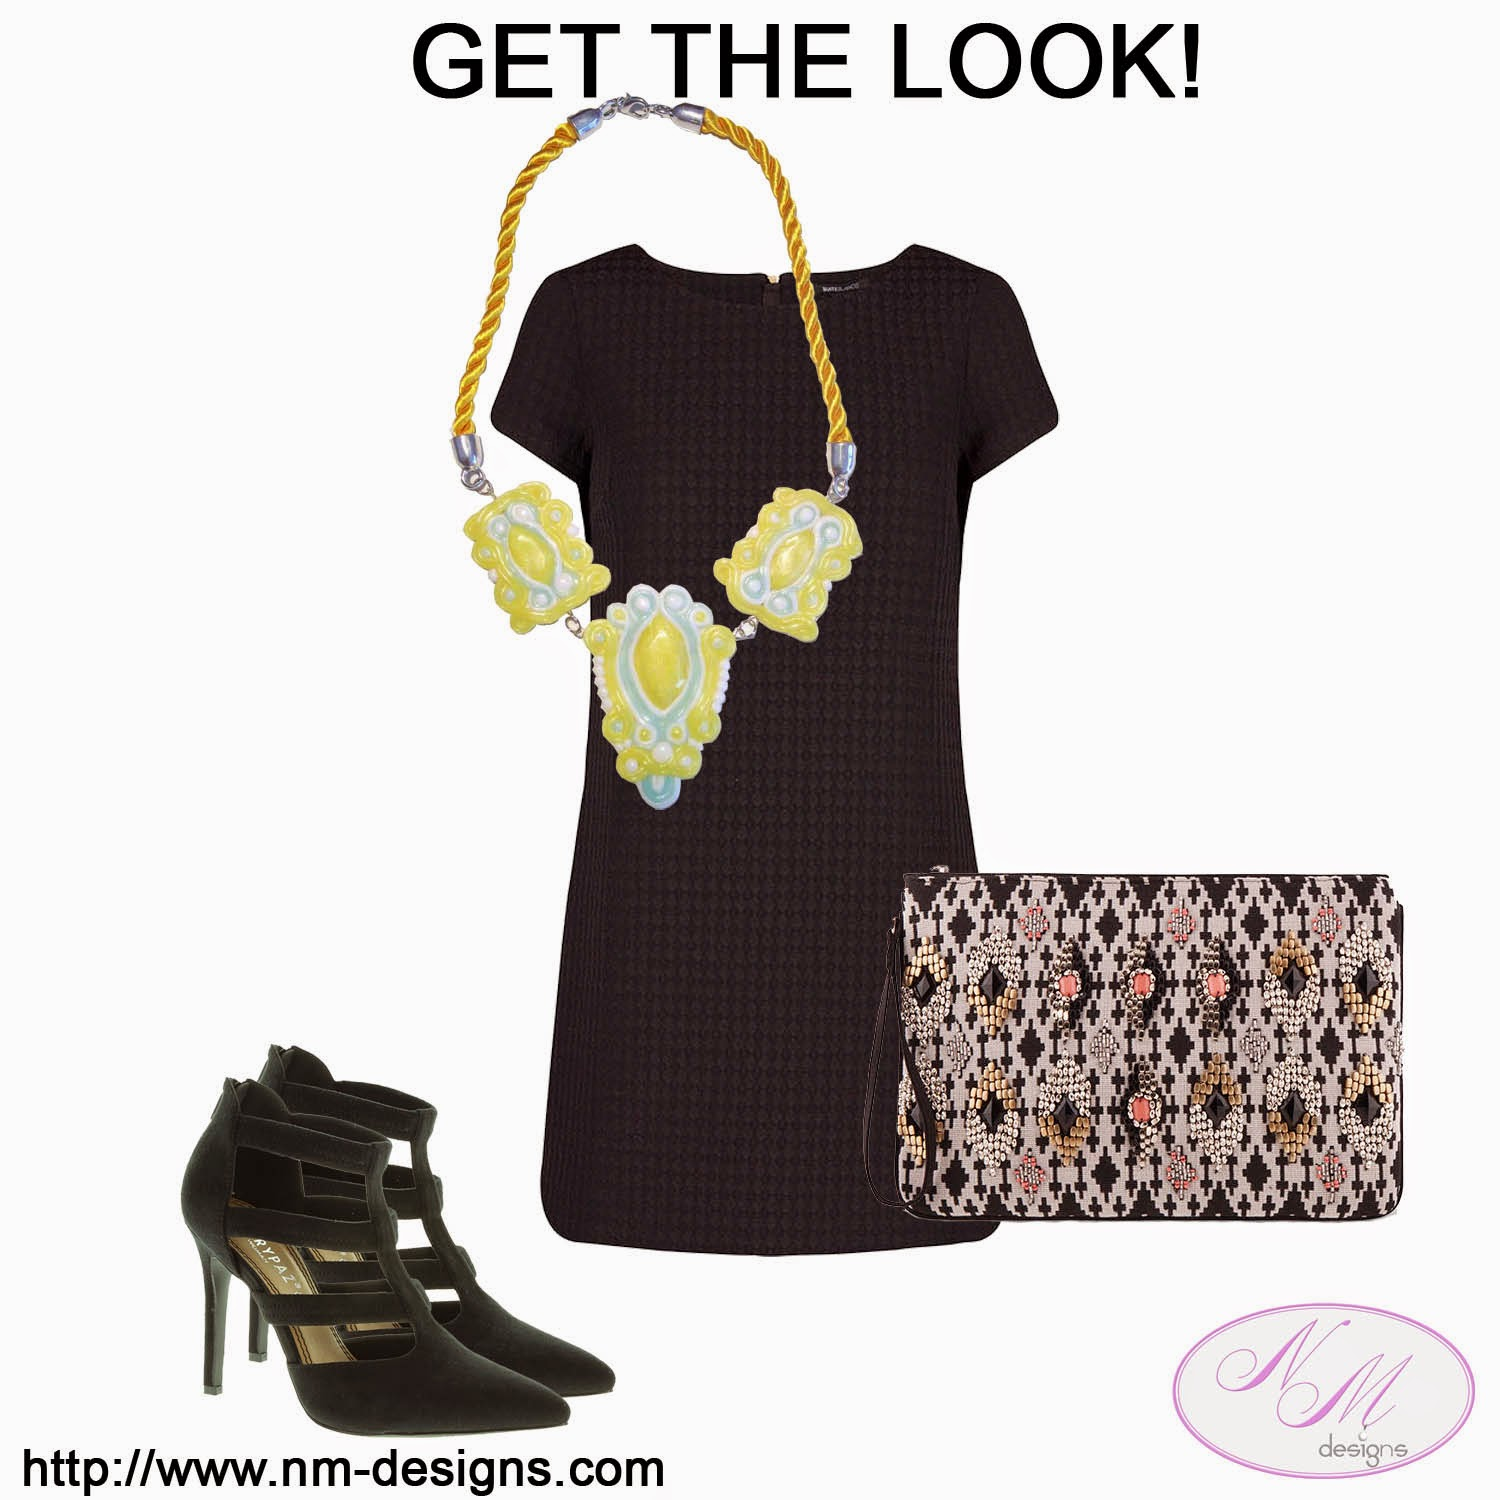 """GET THE LOOK"" from September 17, 2014"